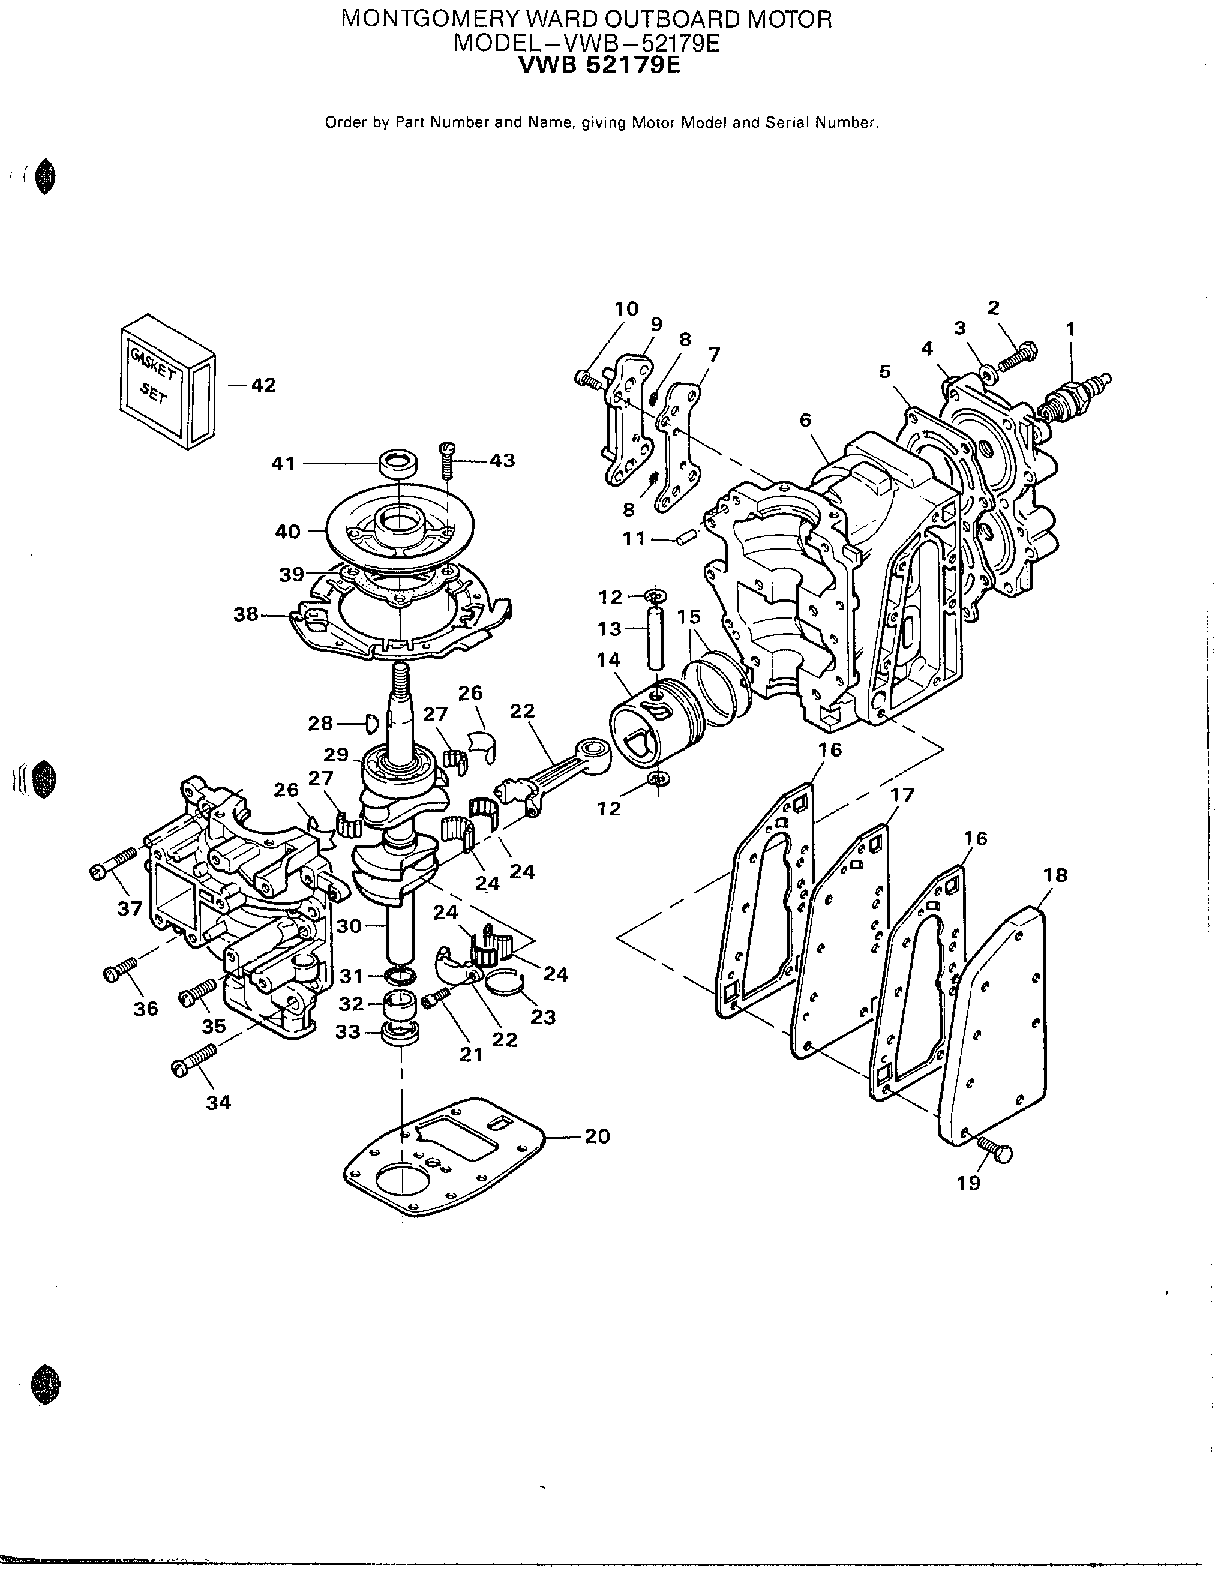 hight resolution of mercury 52179e outboard motor power head page 2 diagram